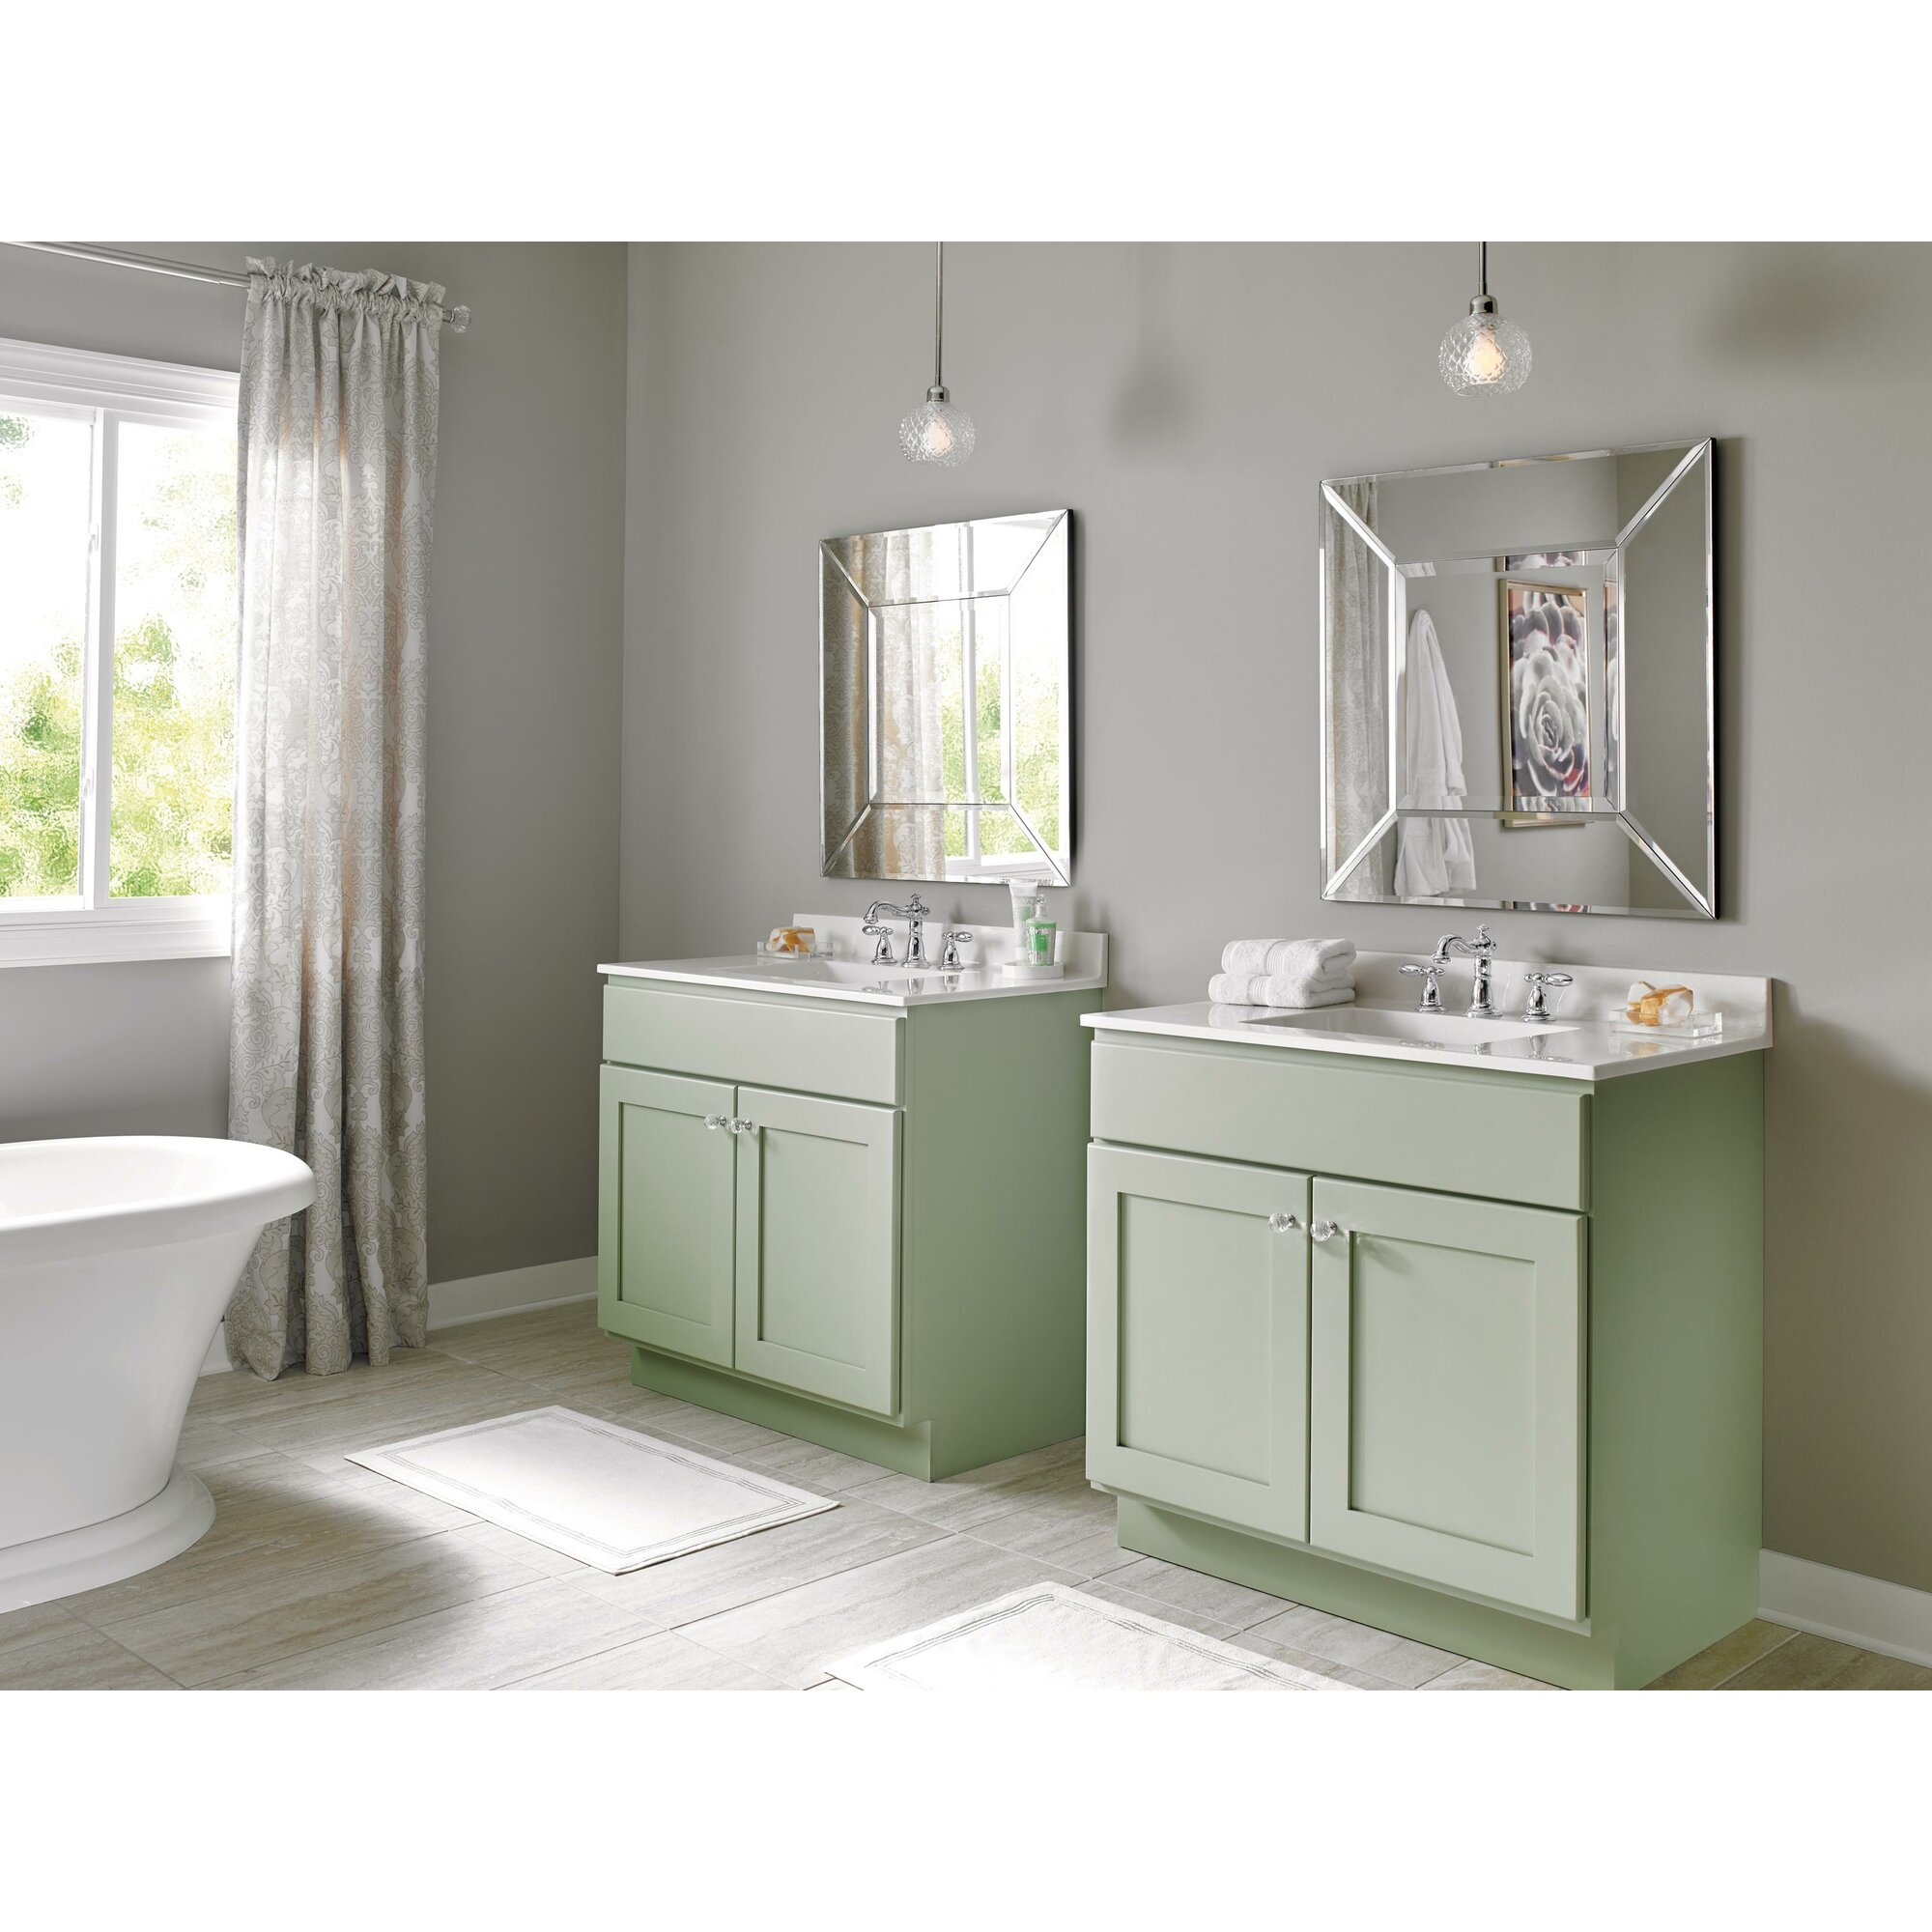 Model Home  Bathroom  Victorian Widespread Bathroom Faucet  Porcelain